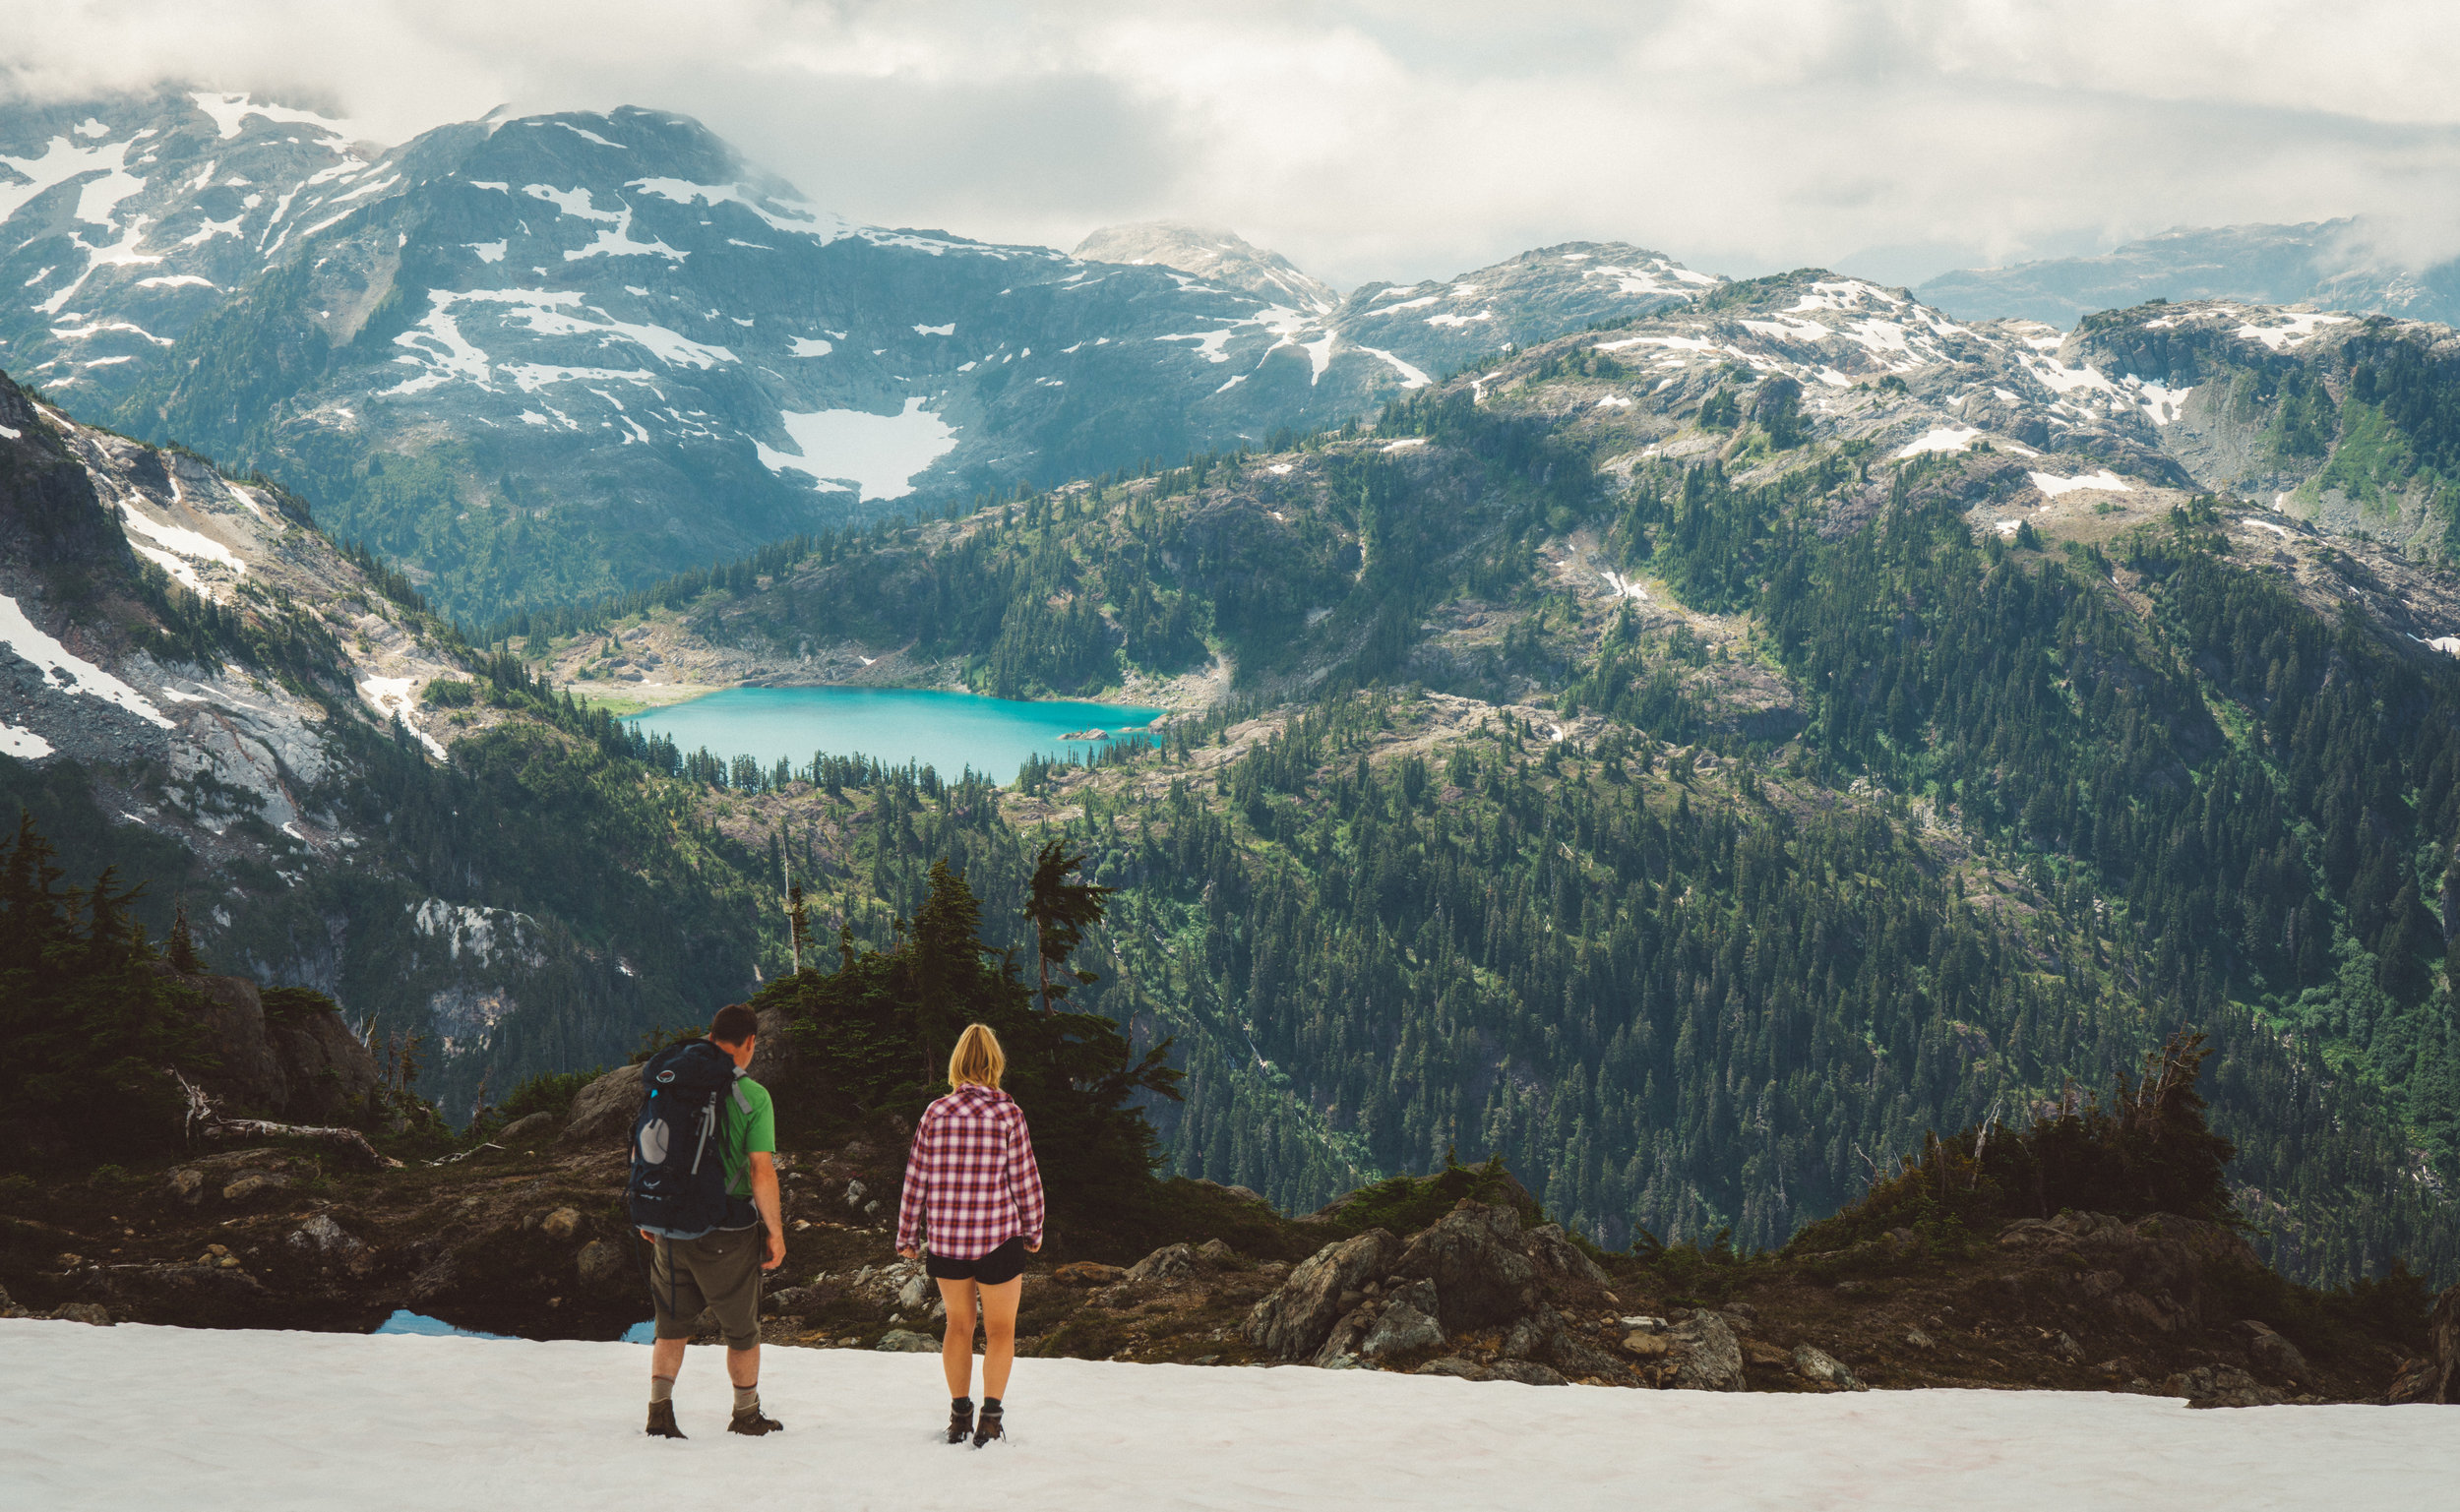 Dirk and Danielle walking down the snowpack.